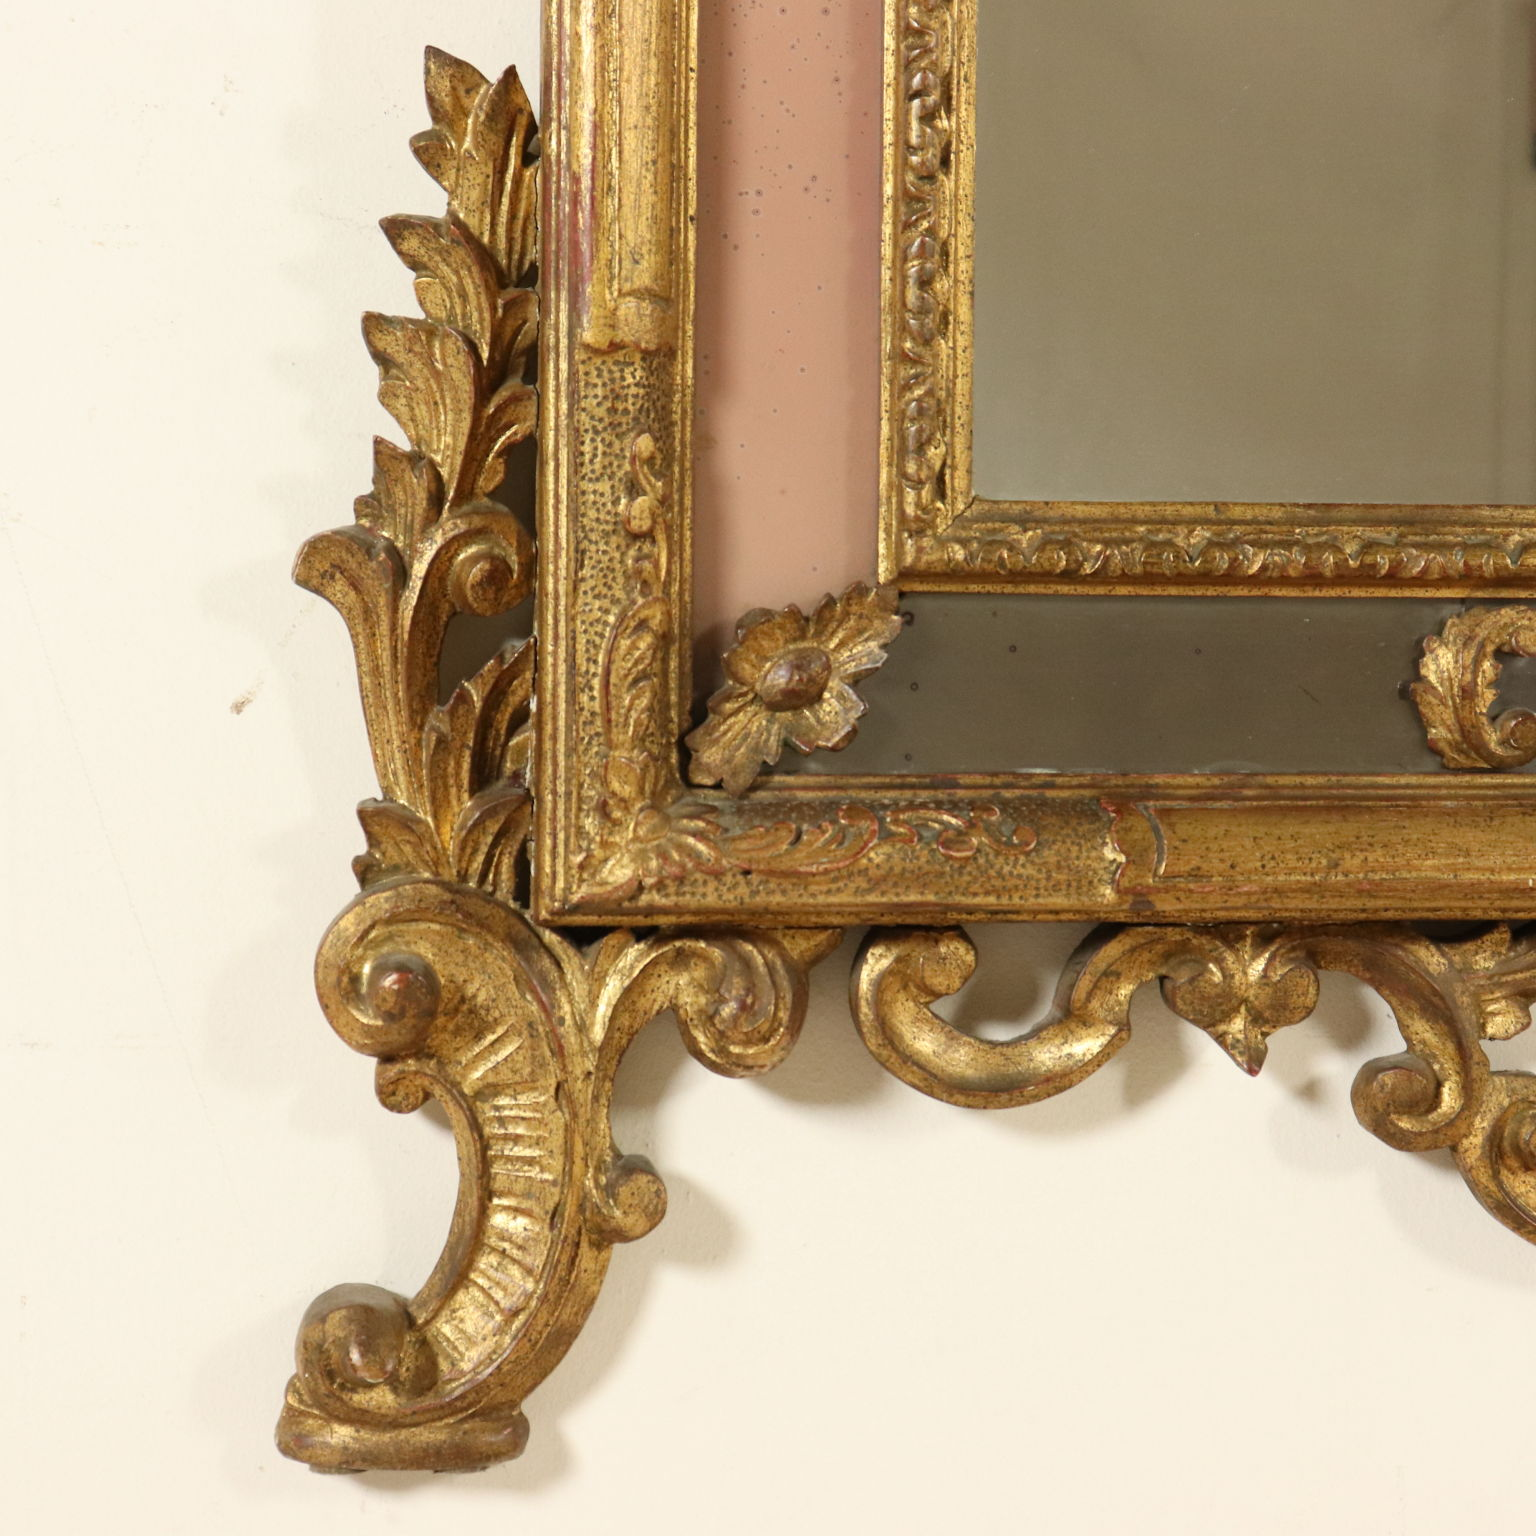 5161c8dd39a Mirror Baroque Style Piedmont Italy 20th Century - Mirrors and ...